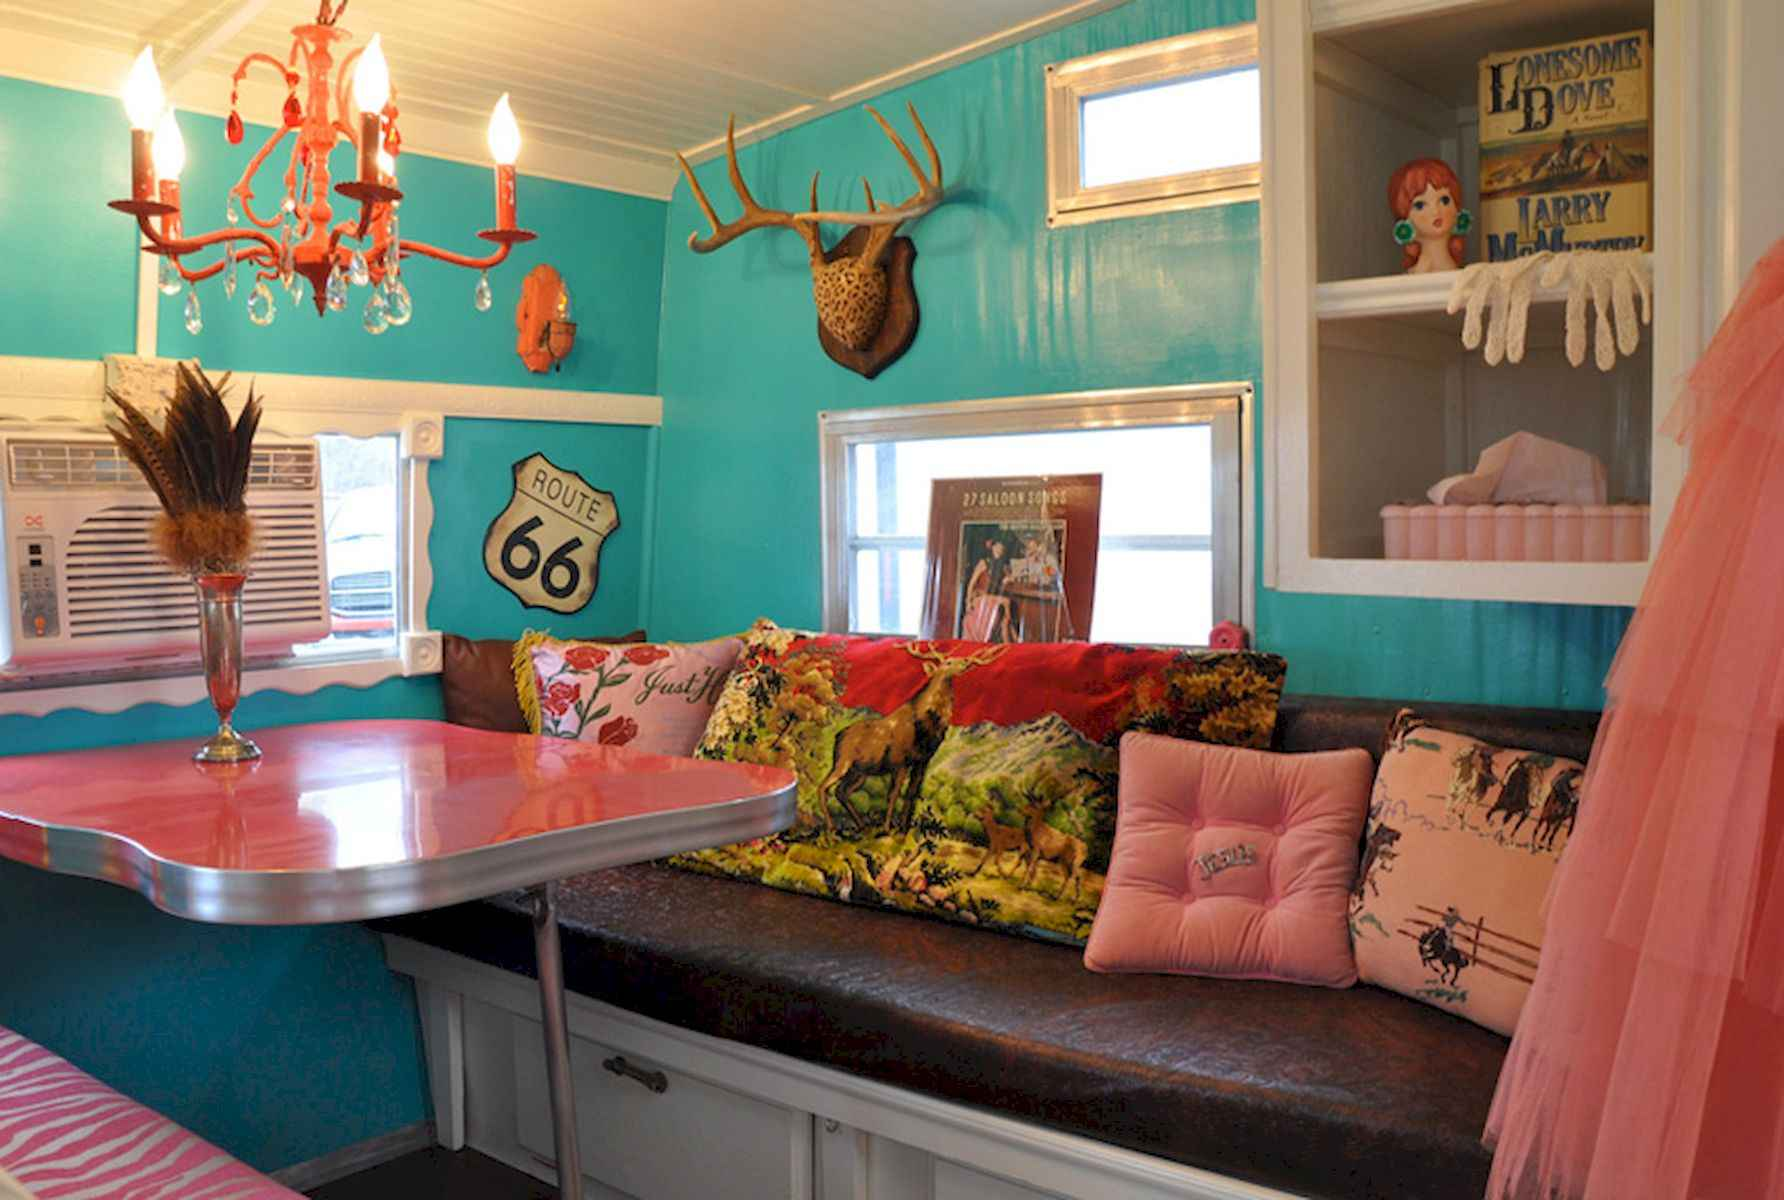 70 Stunning RV Living Camper Room Ideas Decorations Make Your Summer Awesome (11)